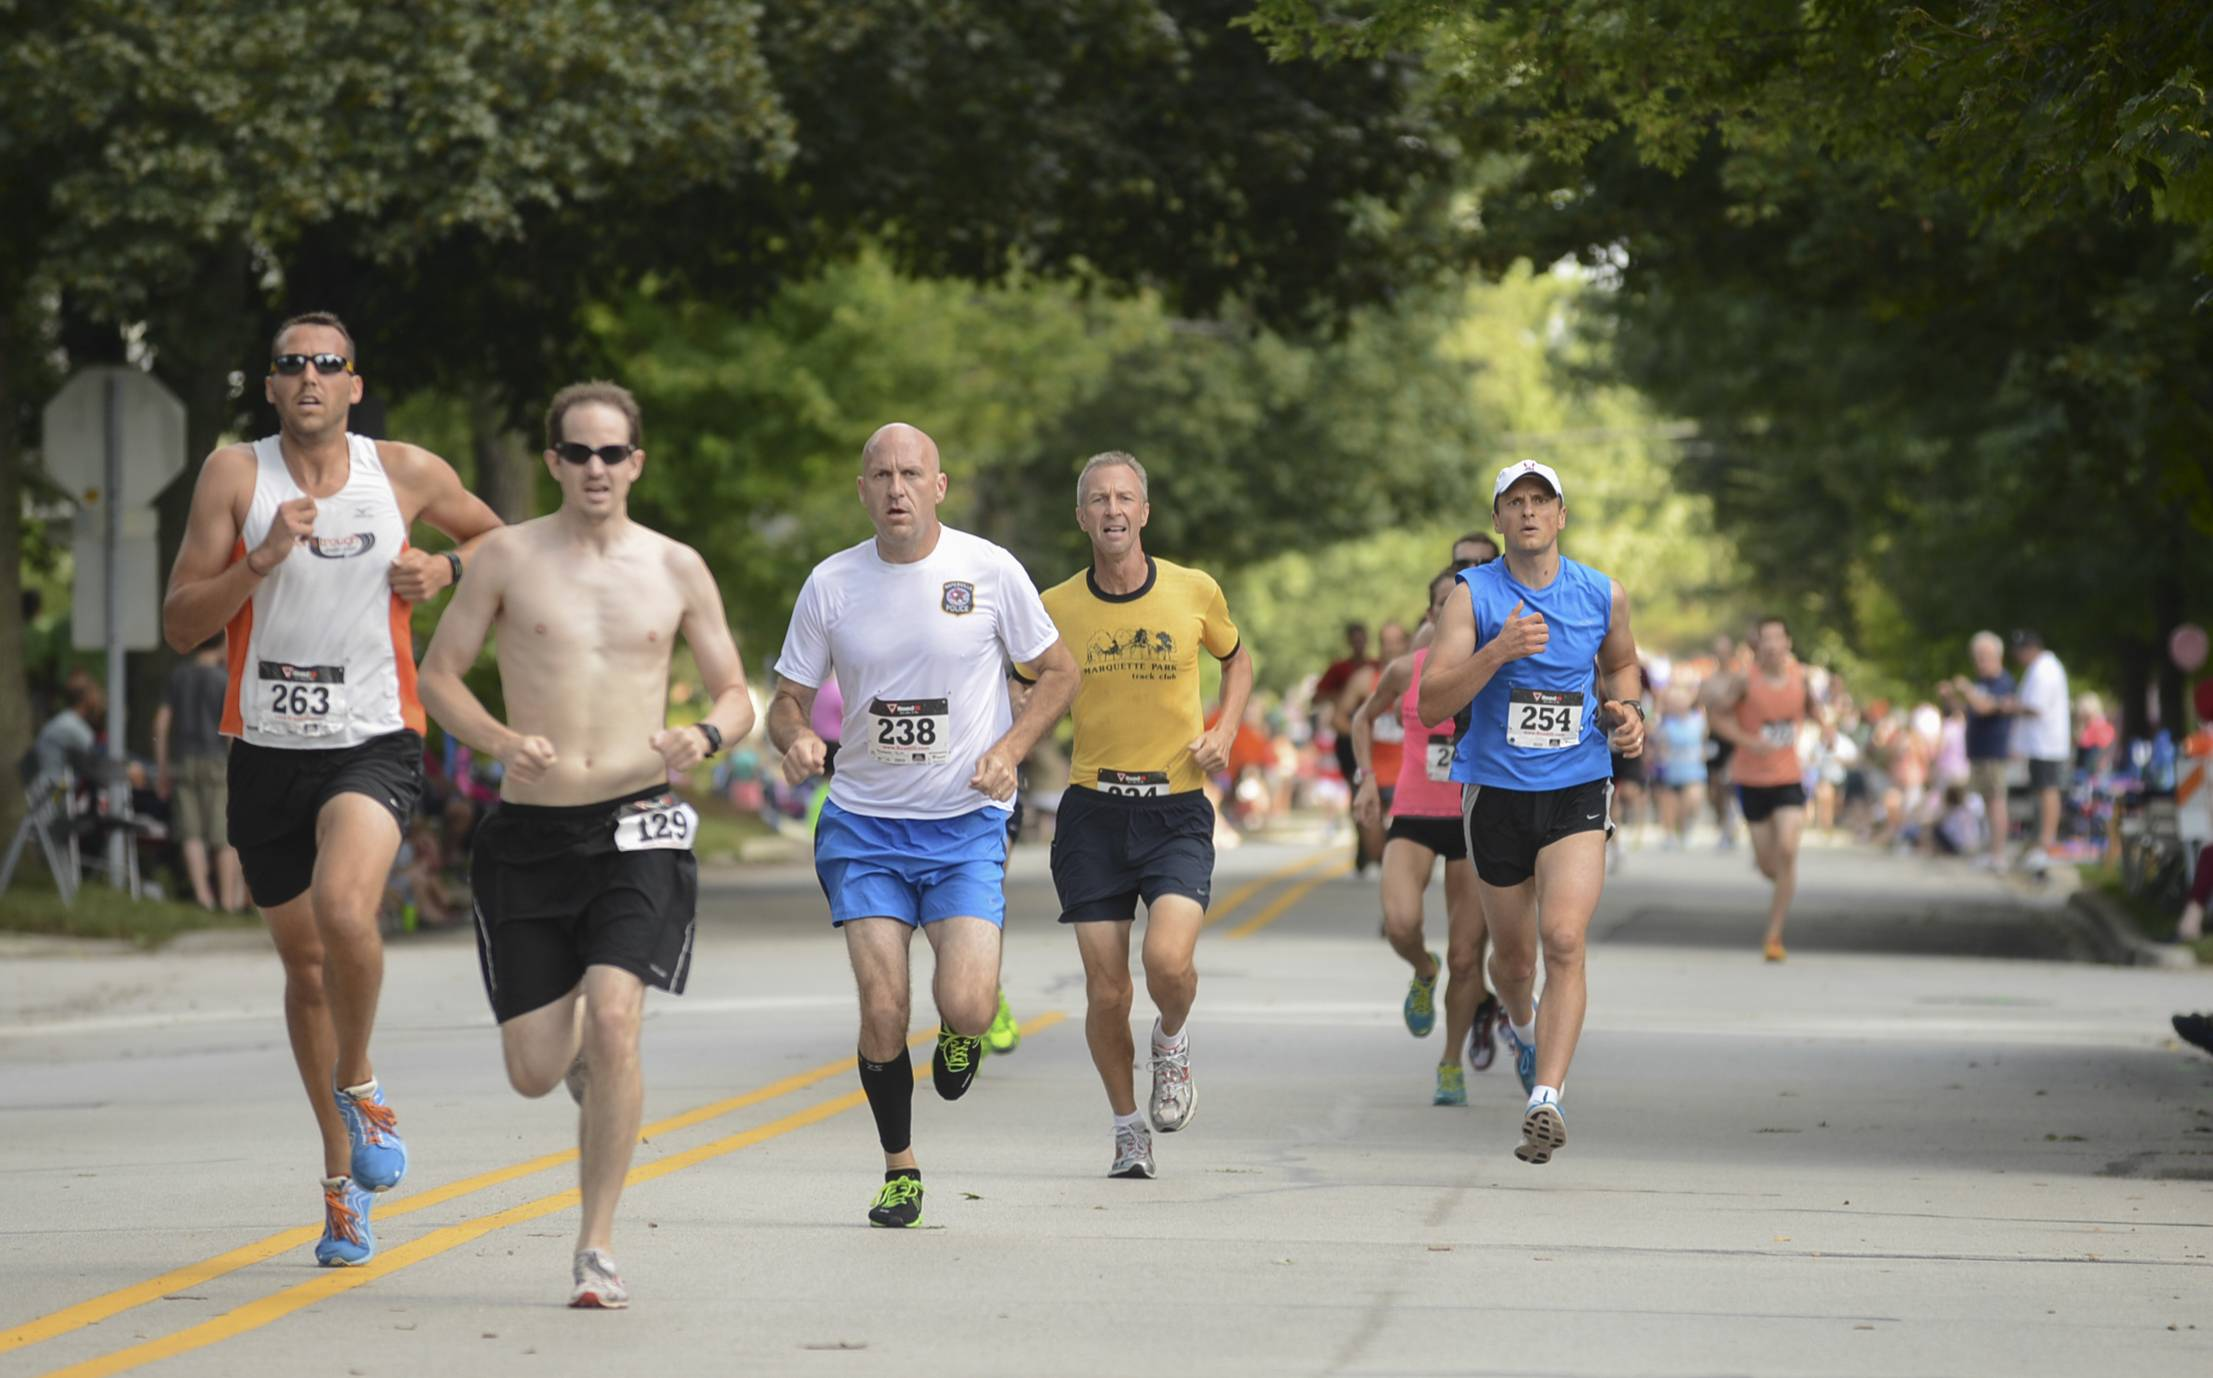 A 5K race, potentially called the Rooster Run, will join the Fling Mile on Labor Day 2015 as part of Last Fling festivities in Naperville.